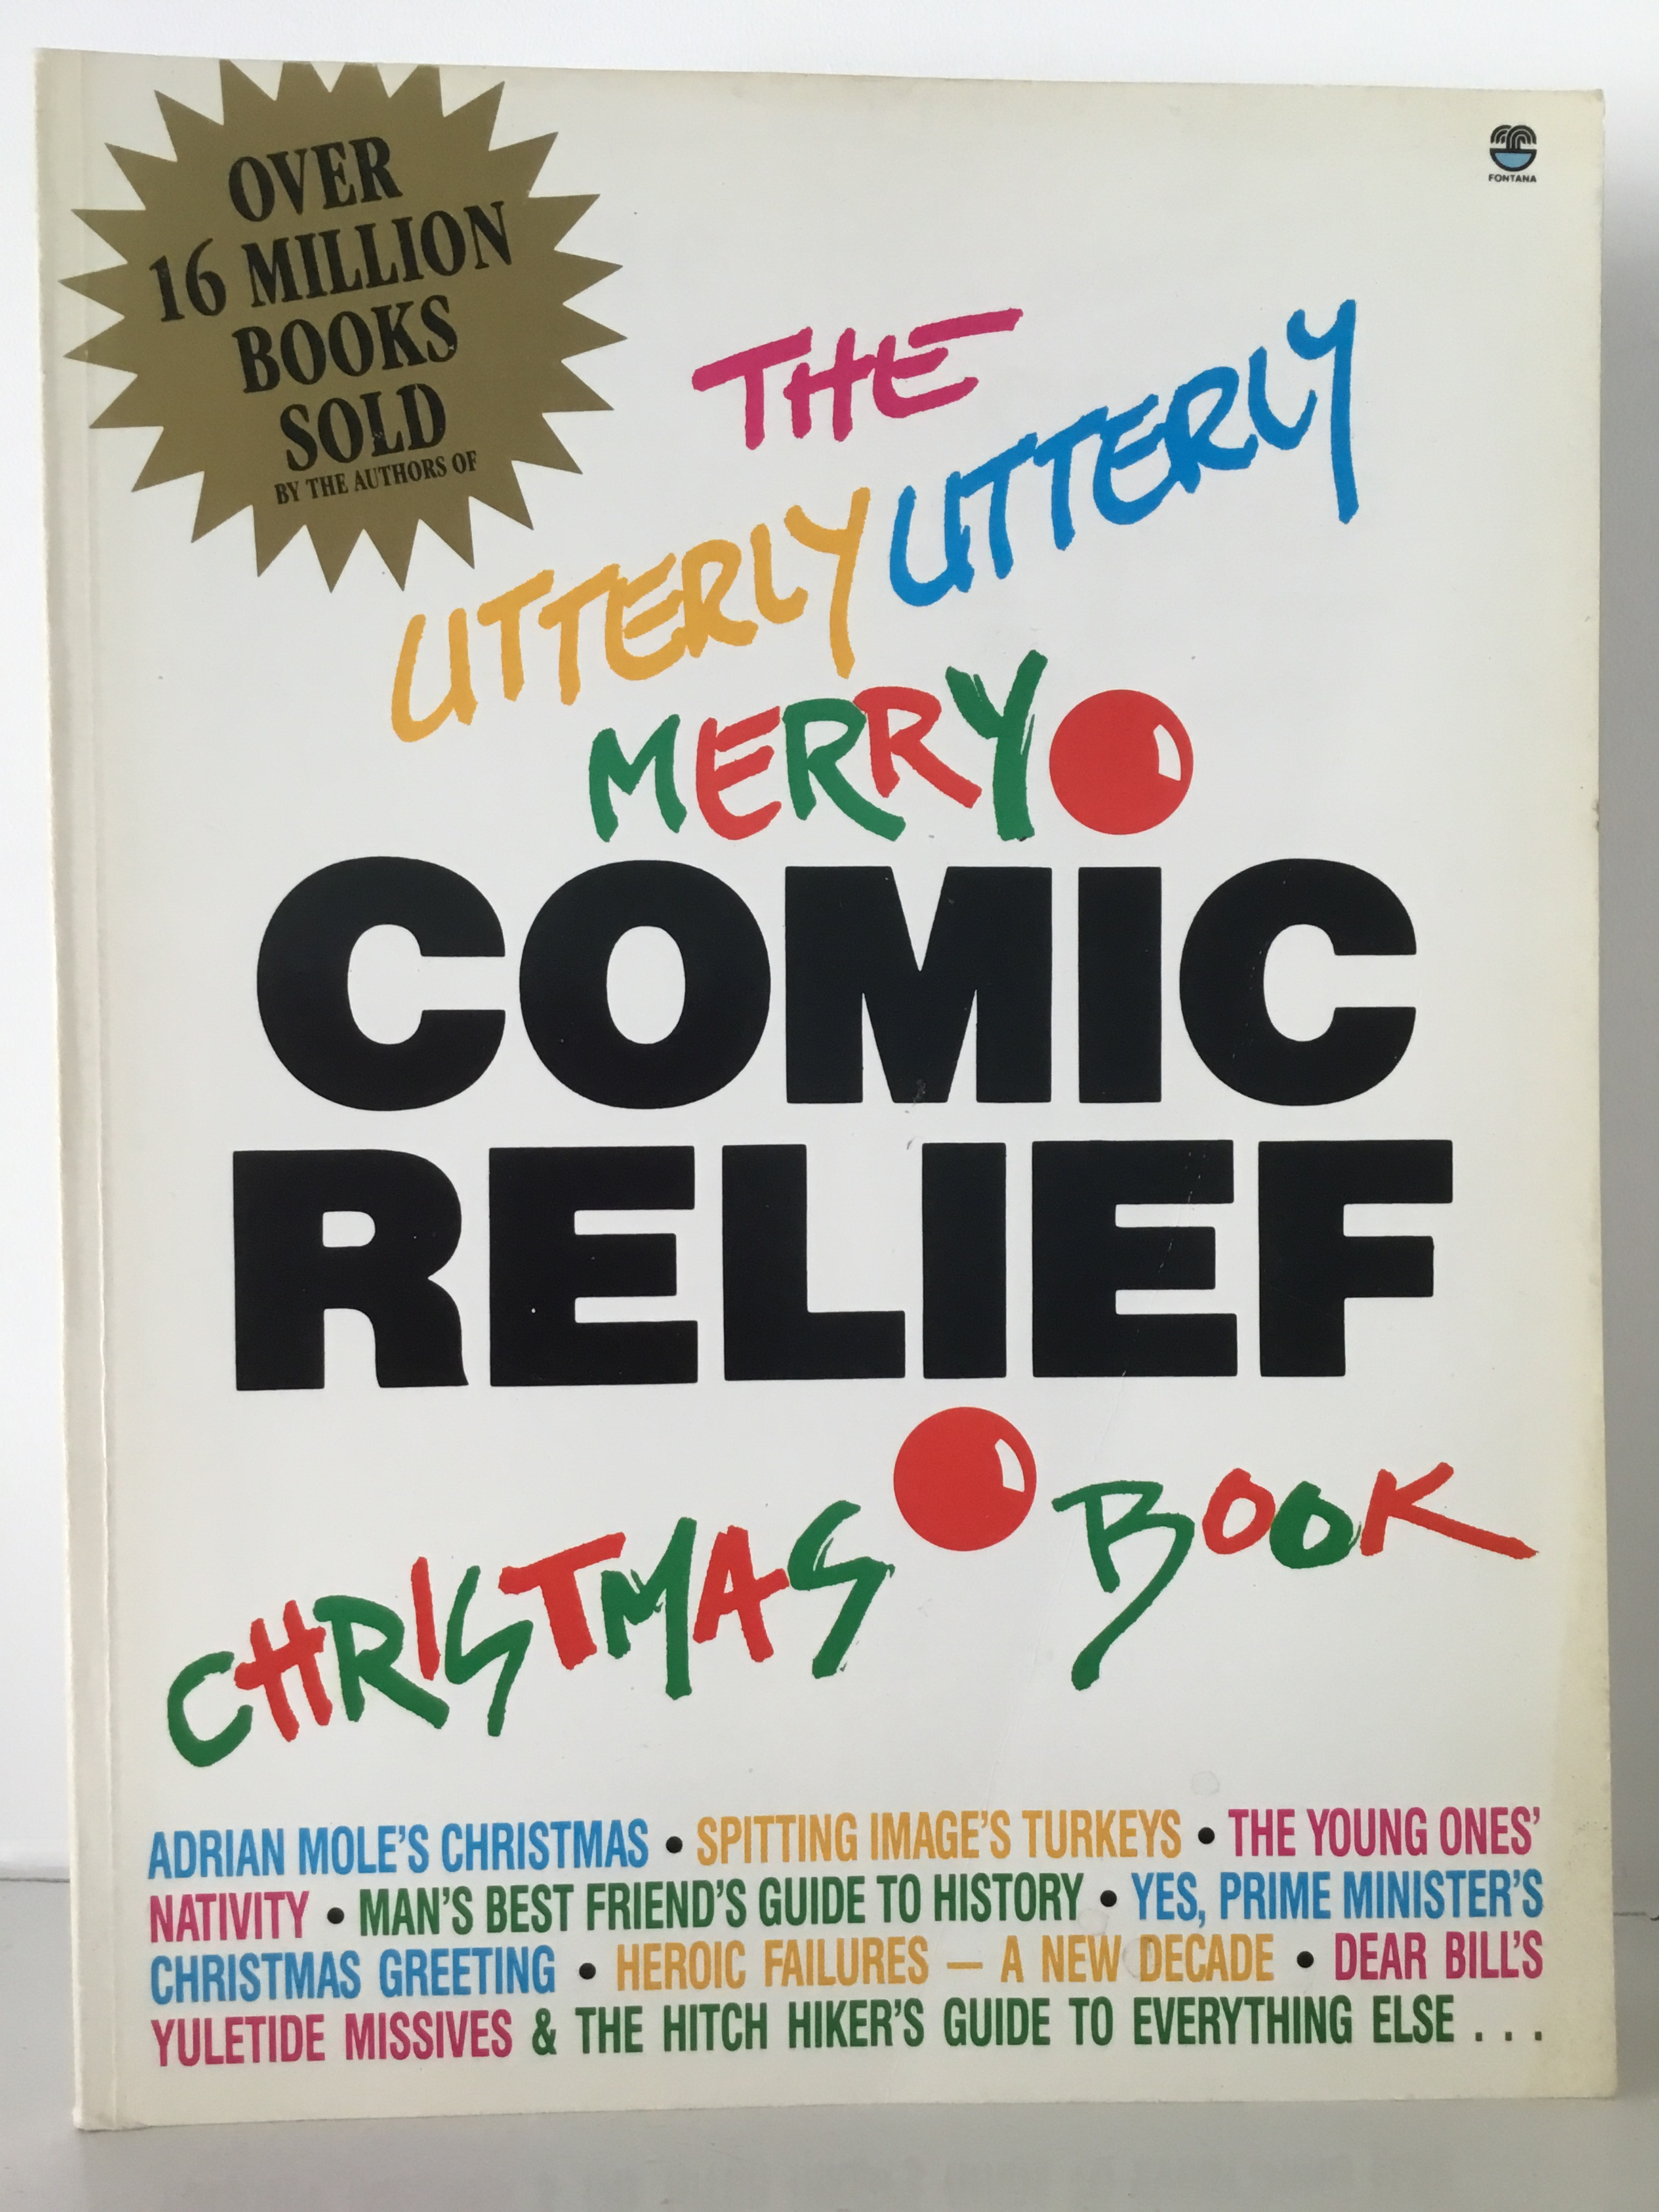 Books, The Utterly Utterly Merry Comic Relief Christmas Book